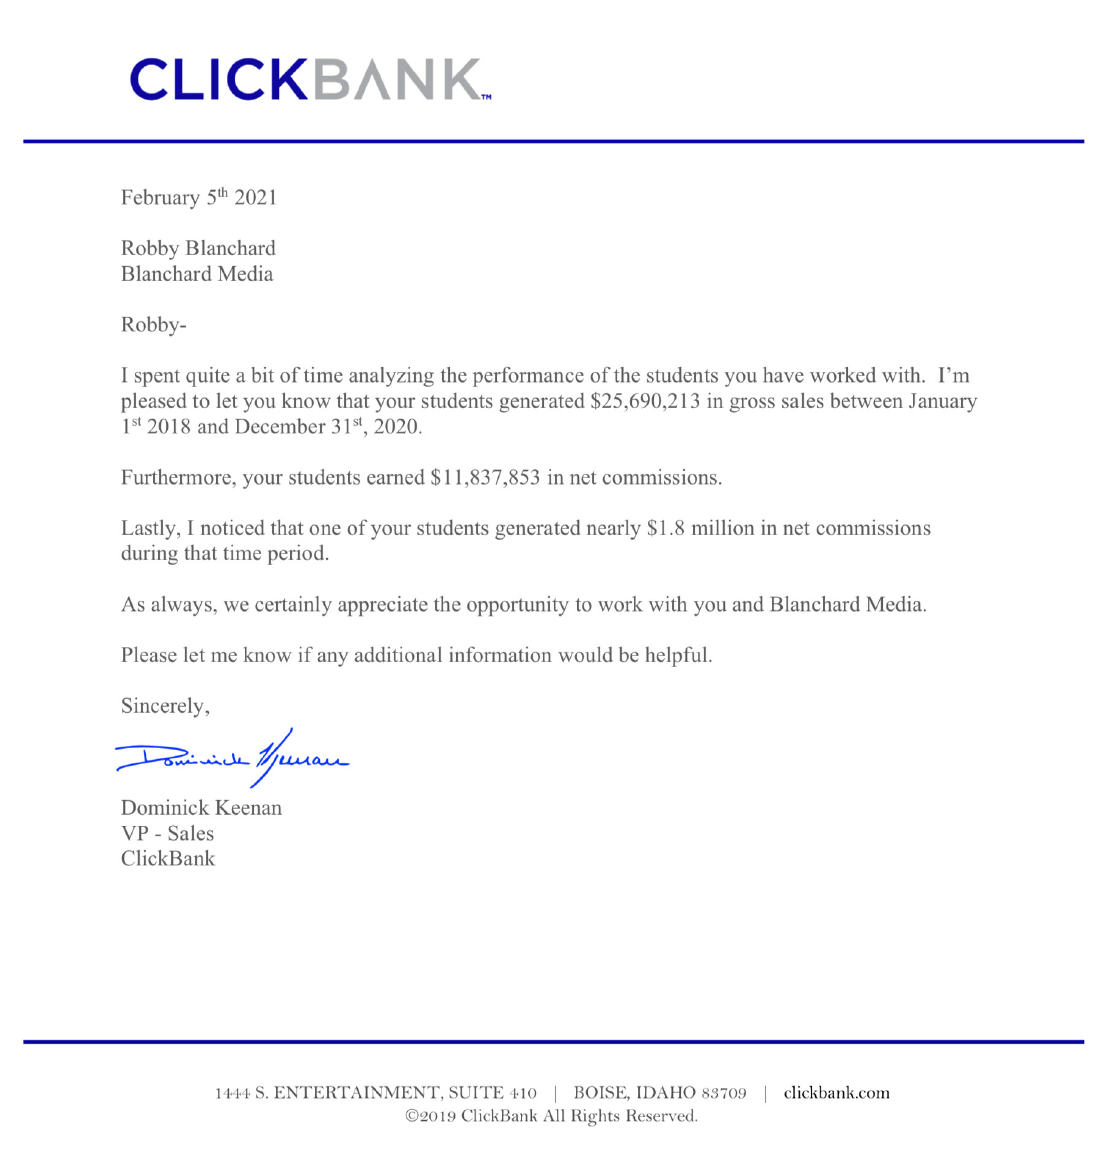 Robby Blanchard Clickbank letter